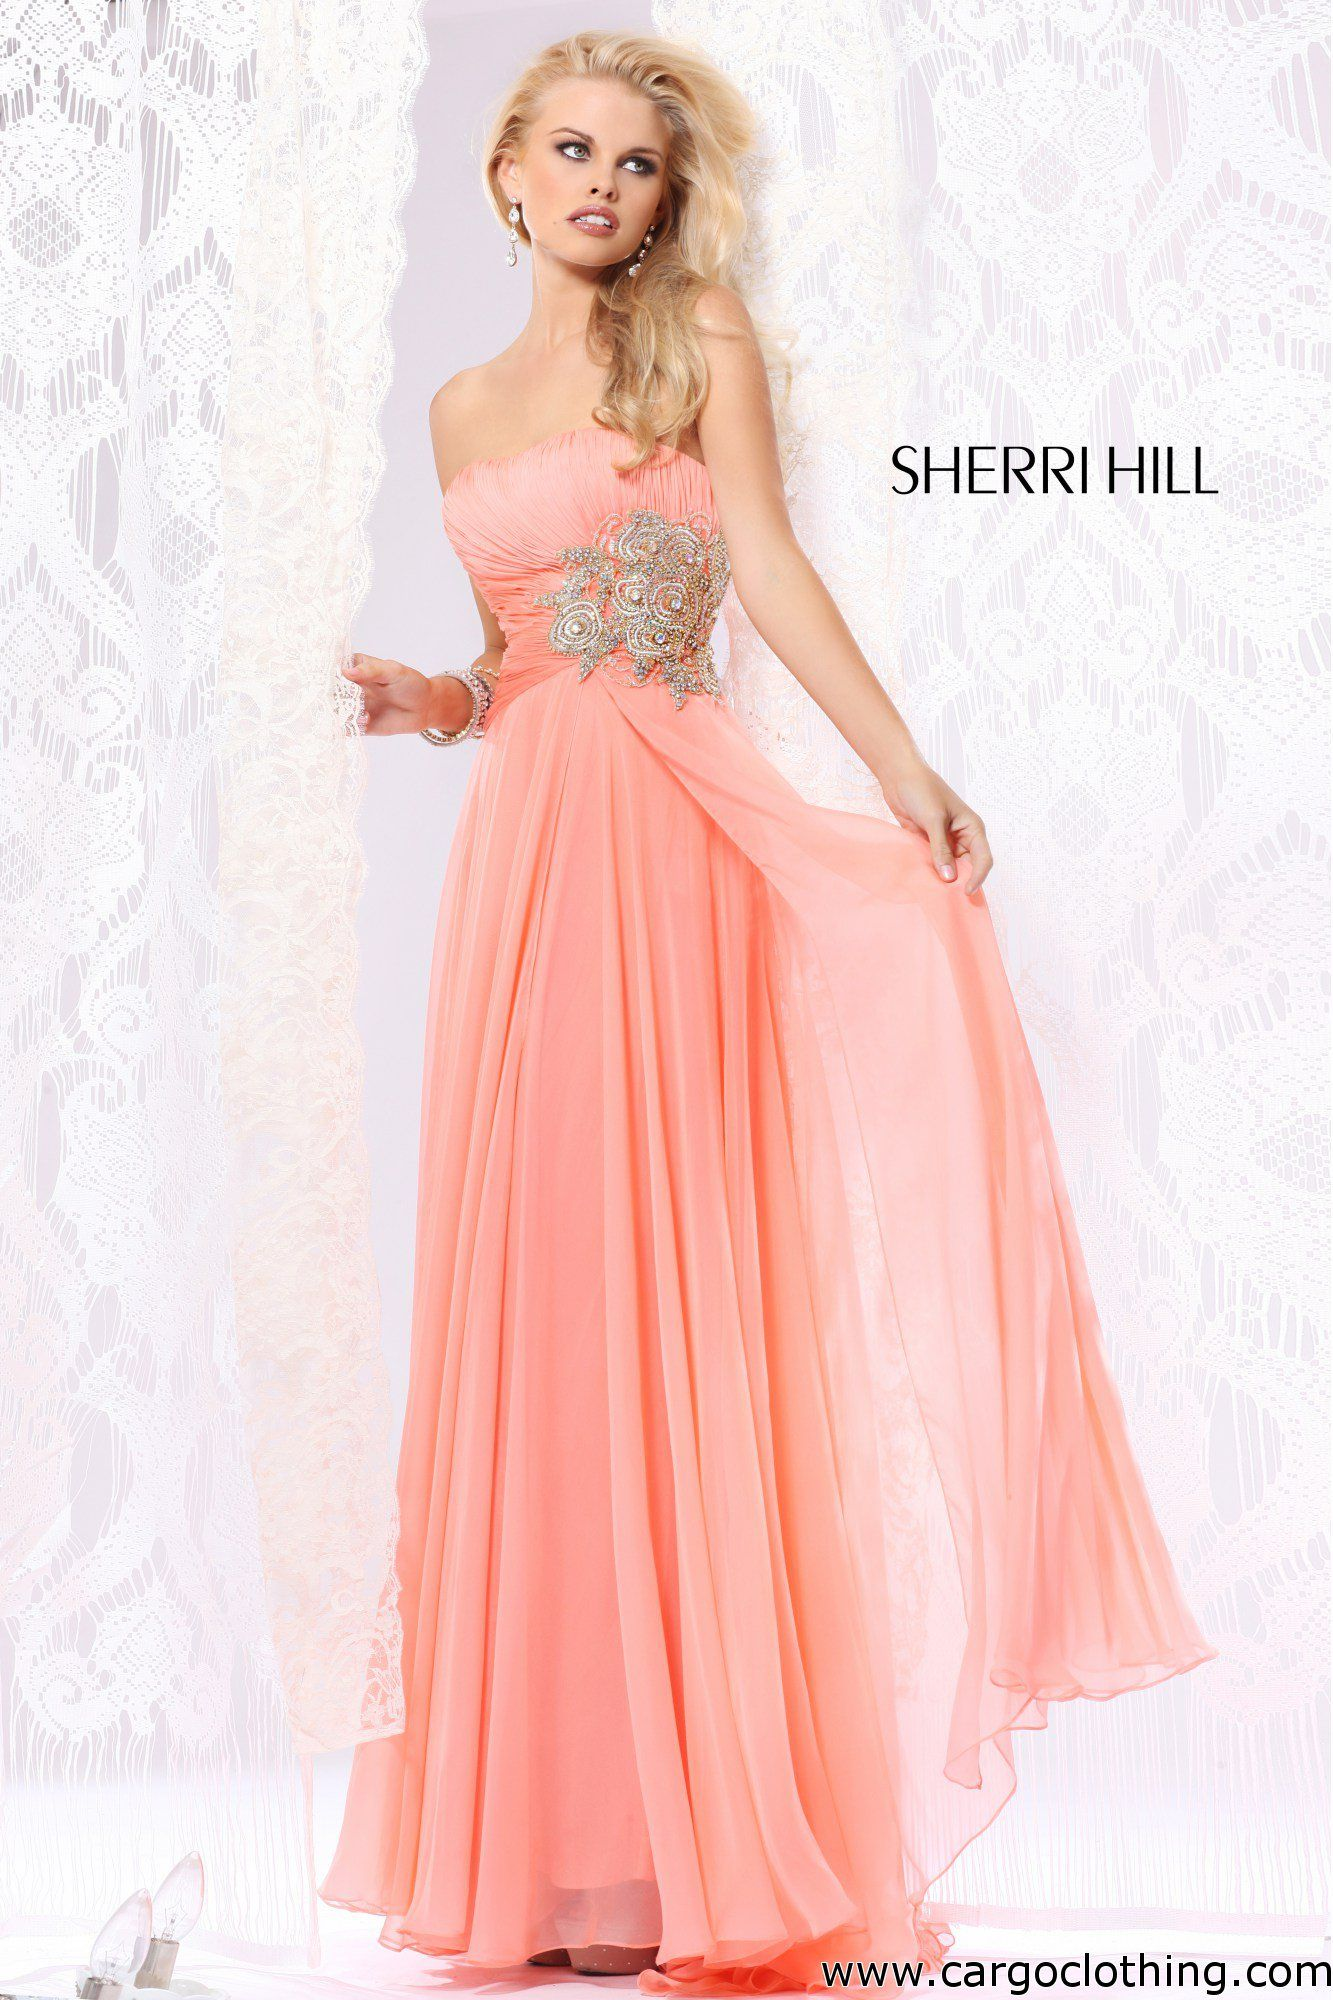 Sherri Hill 1556 Evening Dress www.cargoclothing.com | boda fer ...